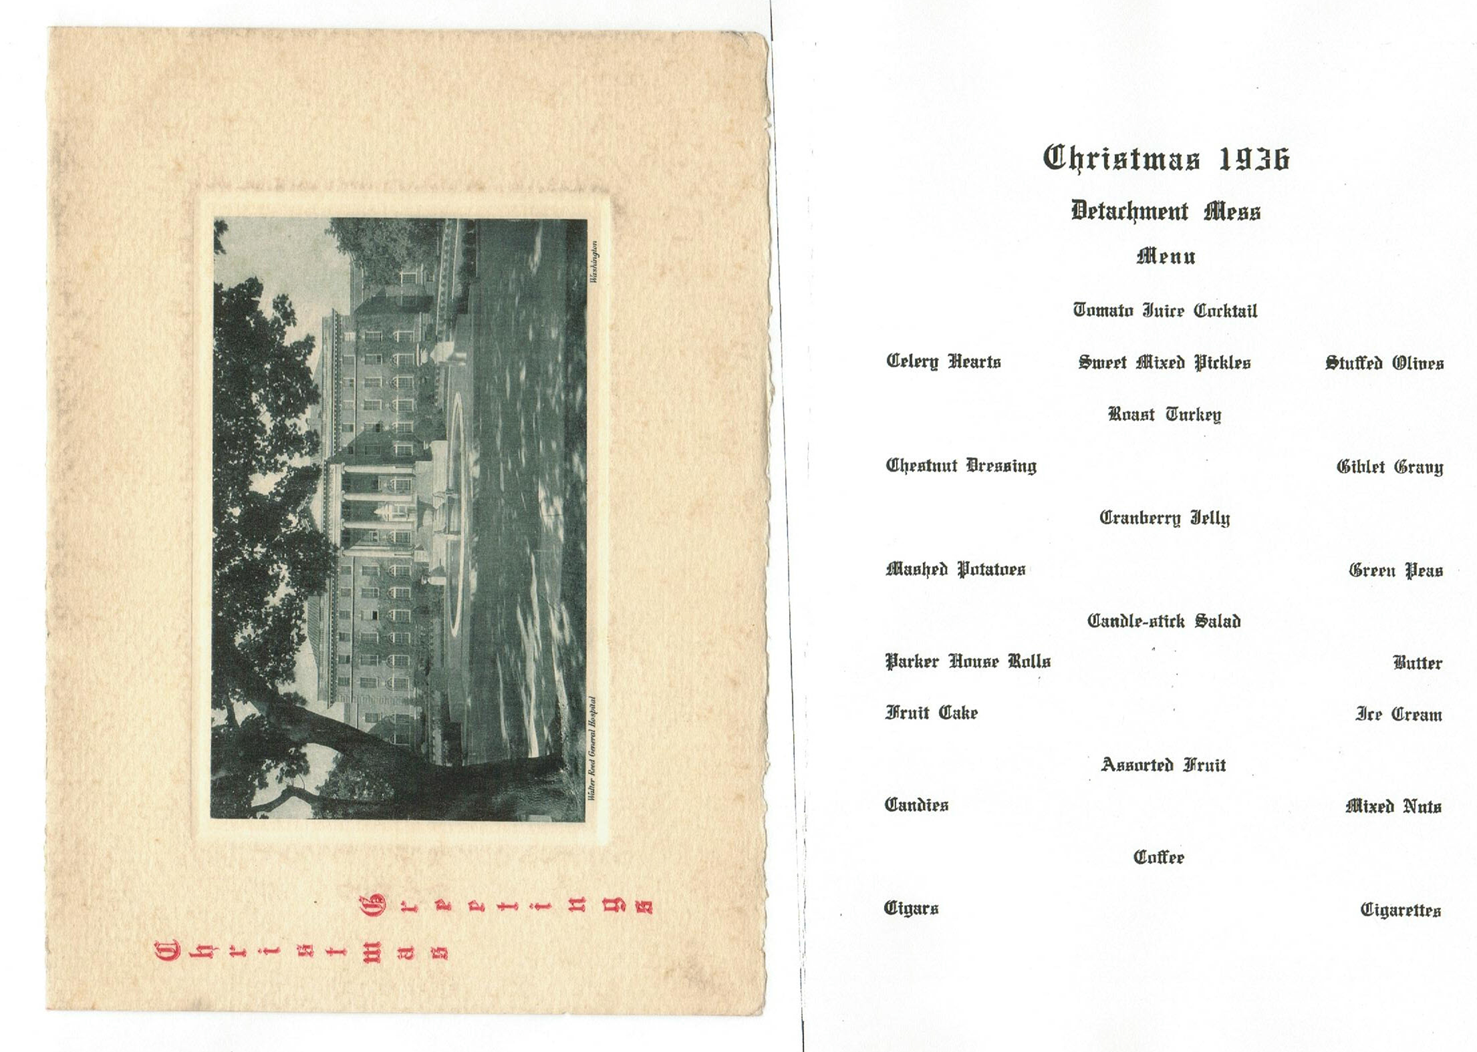 Walter Reed Christmas Menu 1936